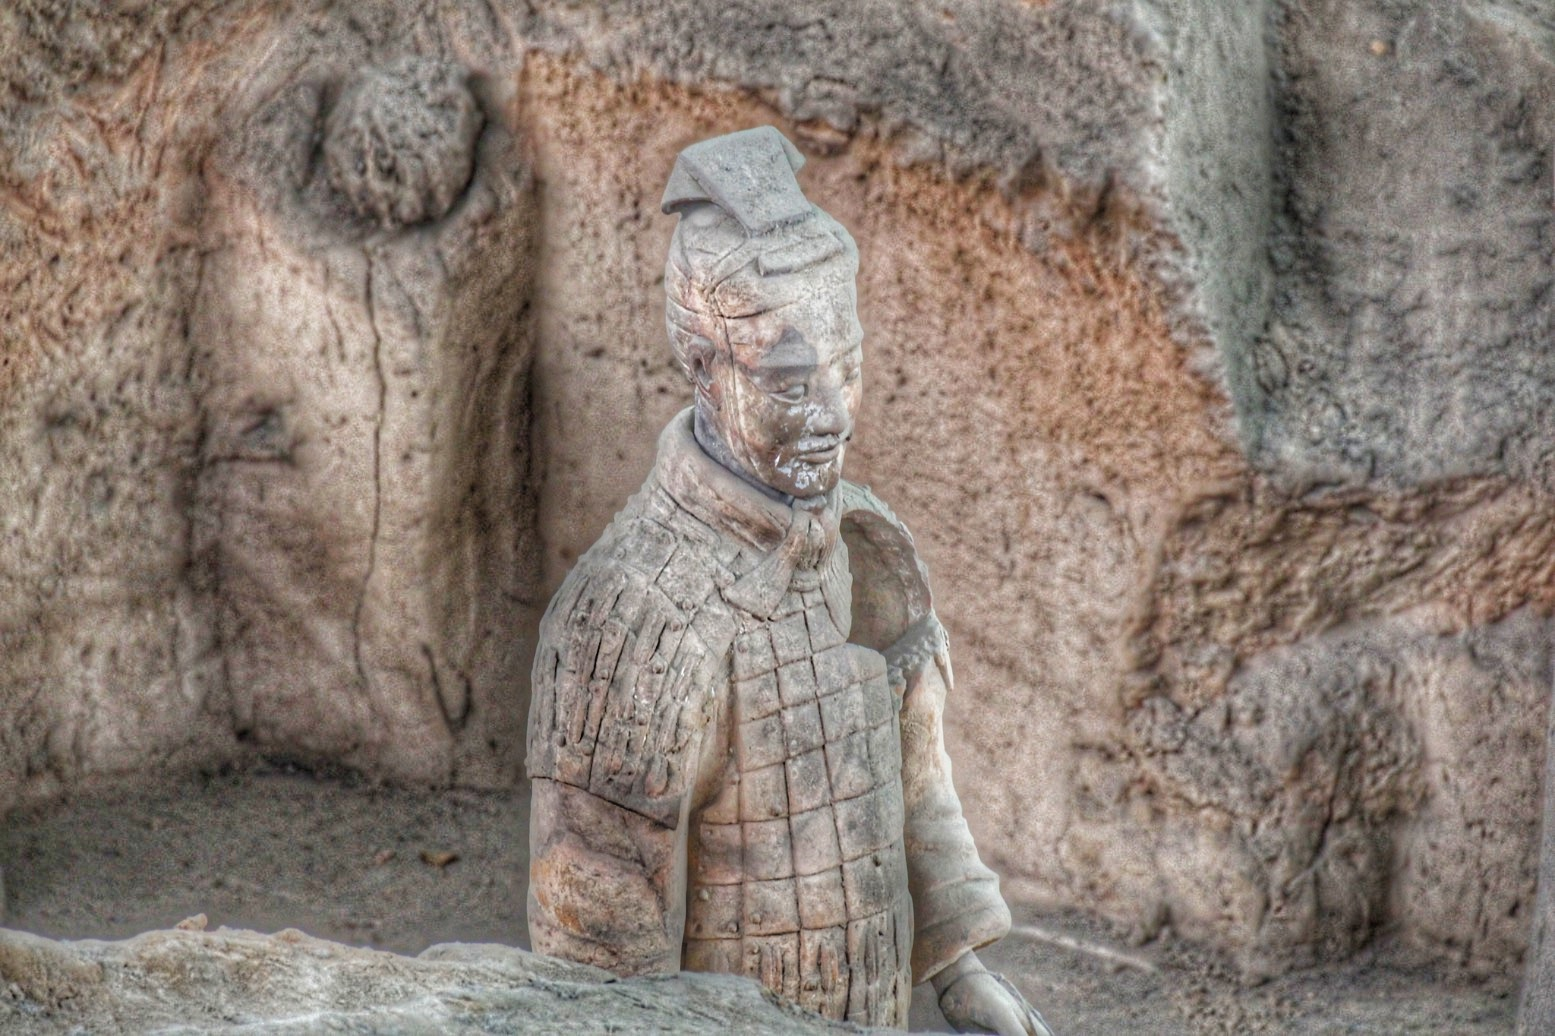 Heartbroken terracotta soldier.